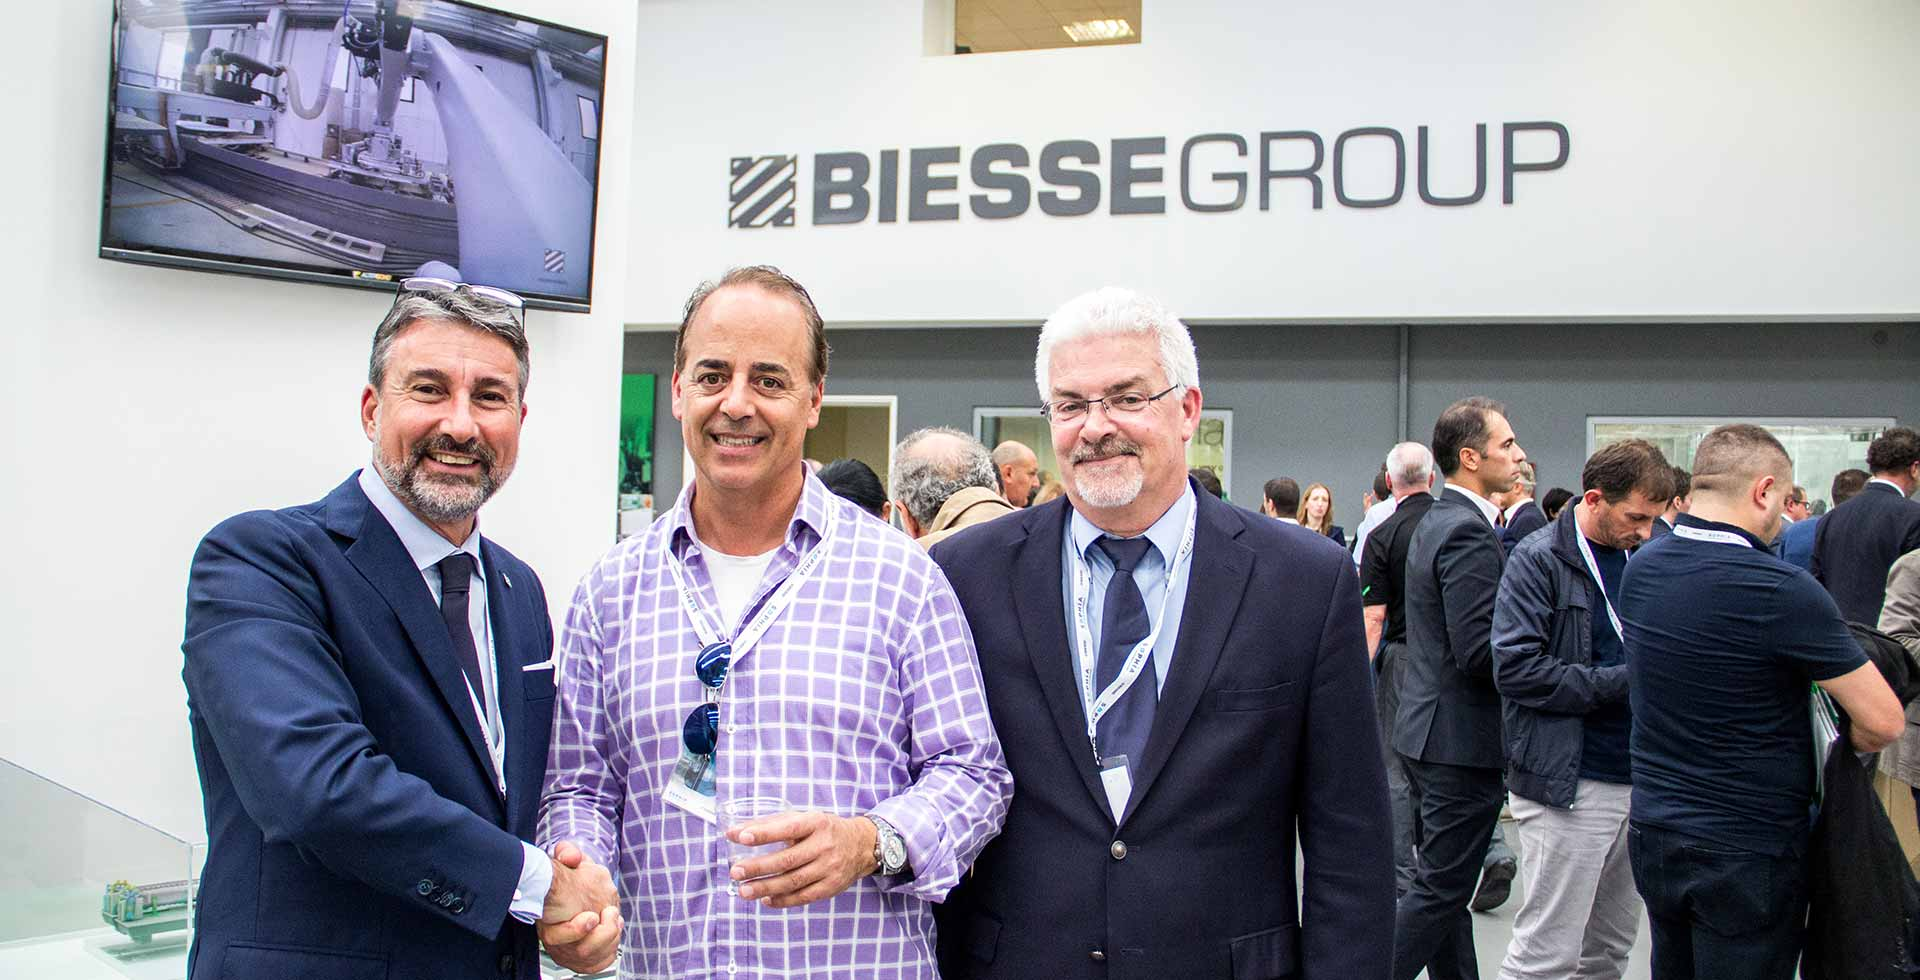 Biesse Inside event is confirmed as one of the leading points of reference for the sector